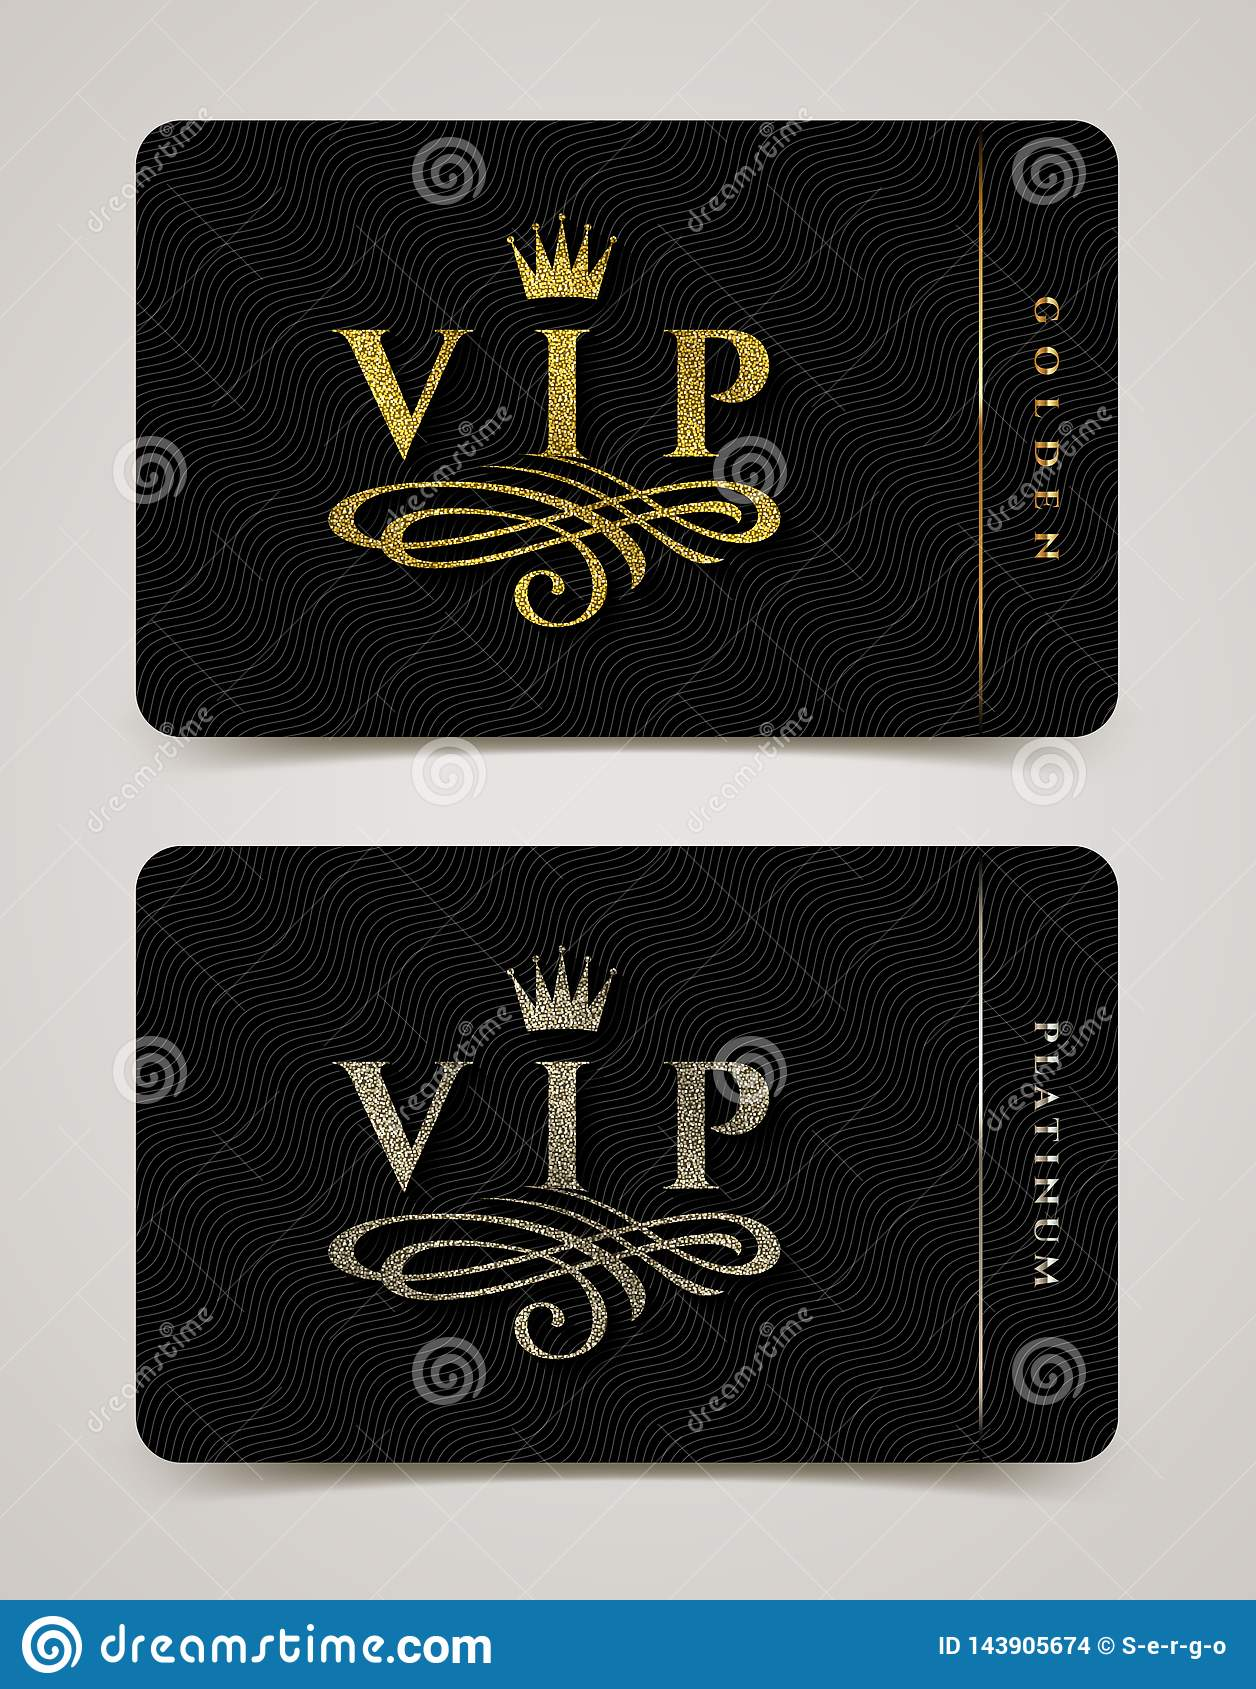 Golden and platinum VIP card template - type design with crown, and flourishes element on a black  background.